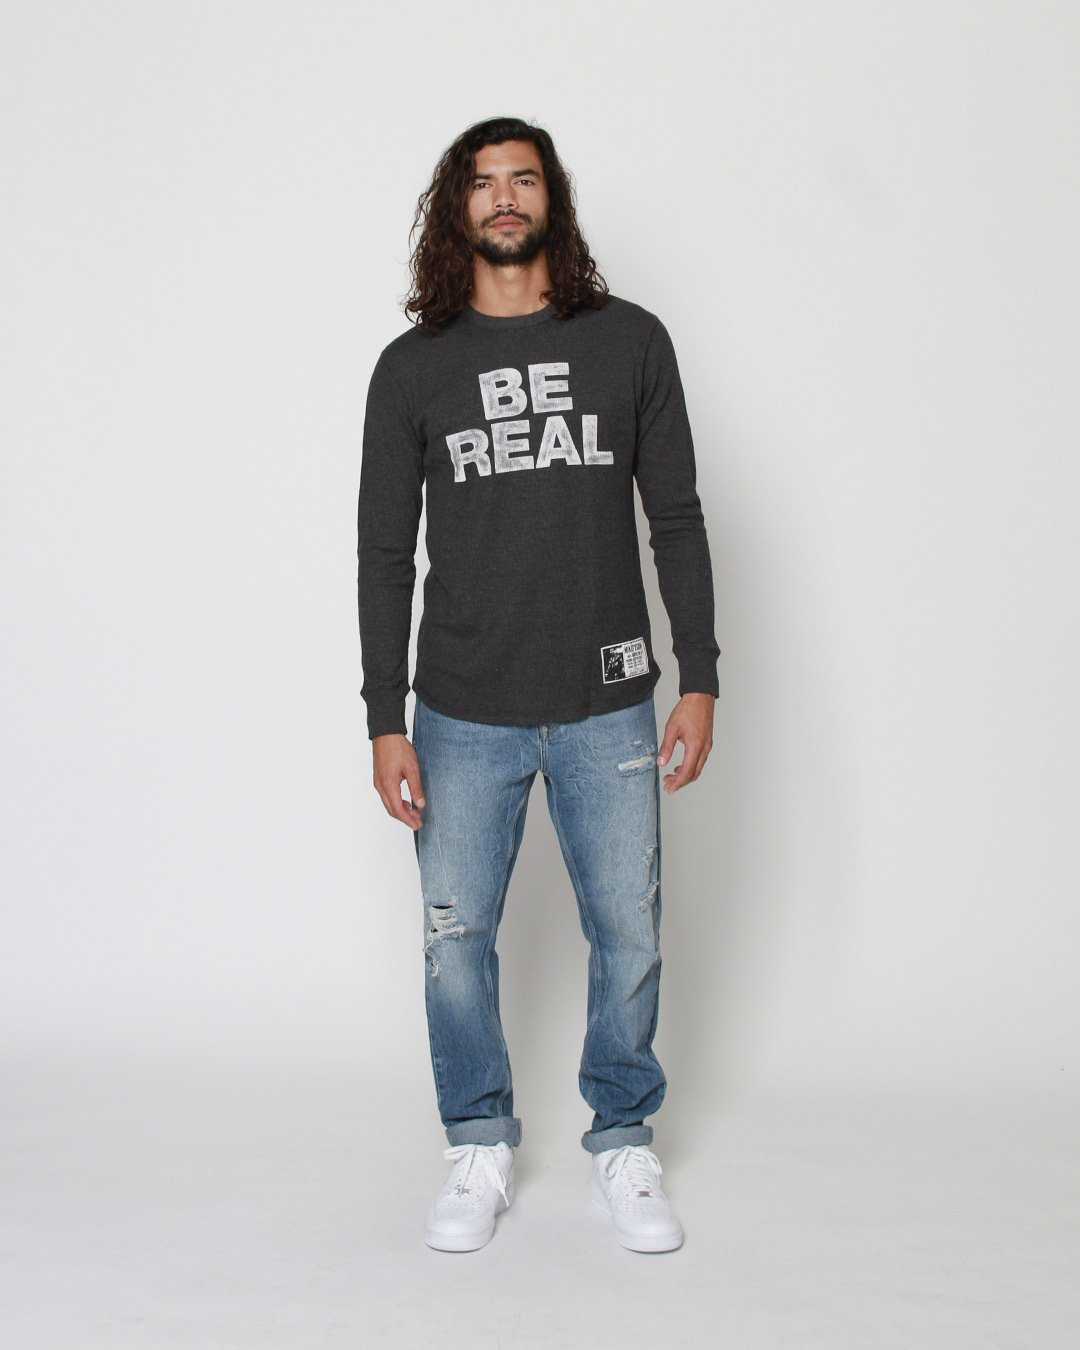 Tyson 'Be Real' Long Sleeve